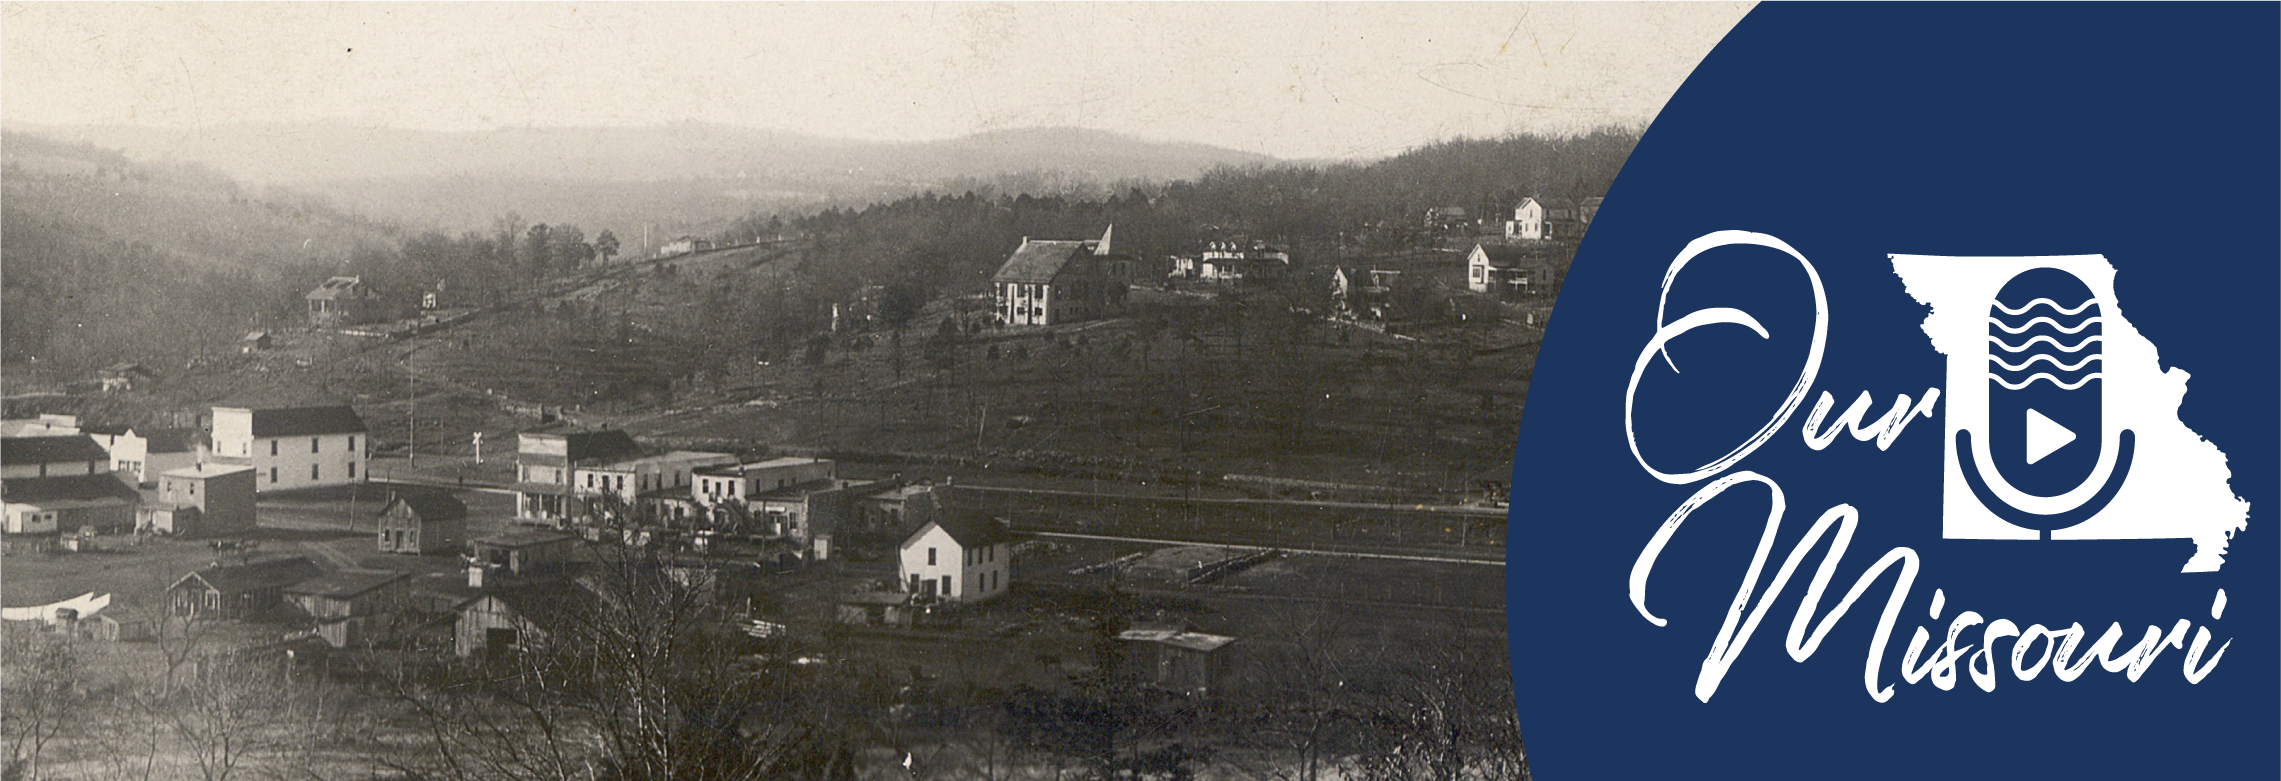 View of town looking east, Hollister, 1916. [Missouri Postcard Collection, P0032-004065-1]